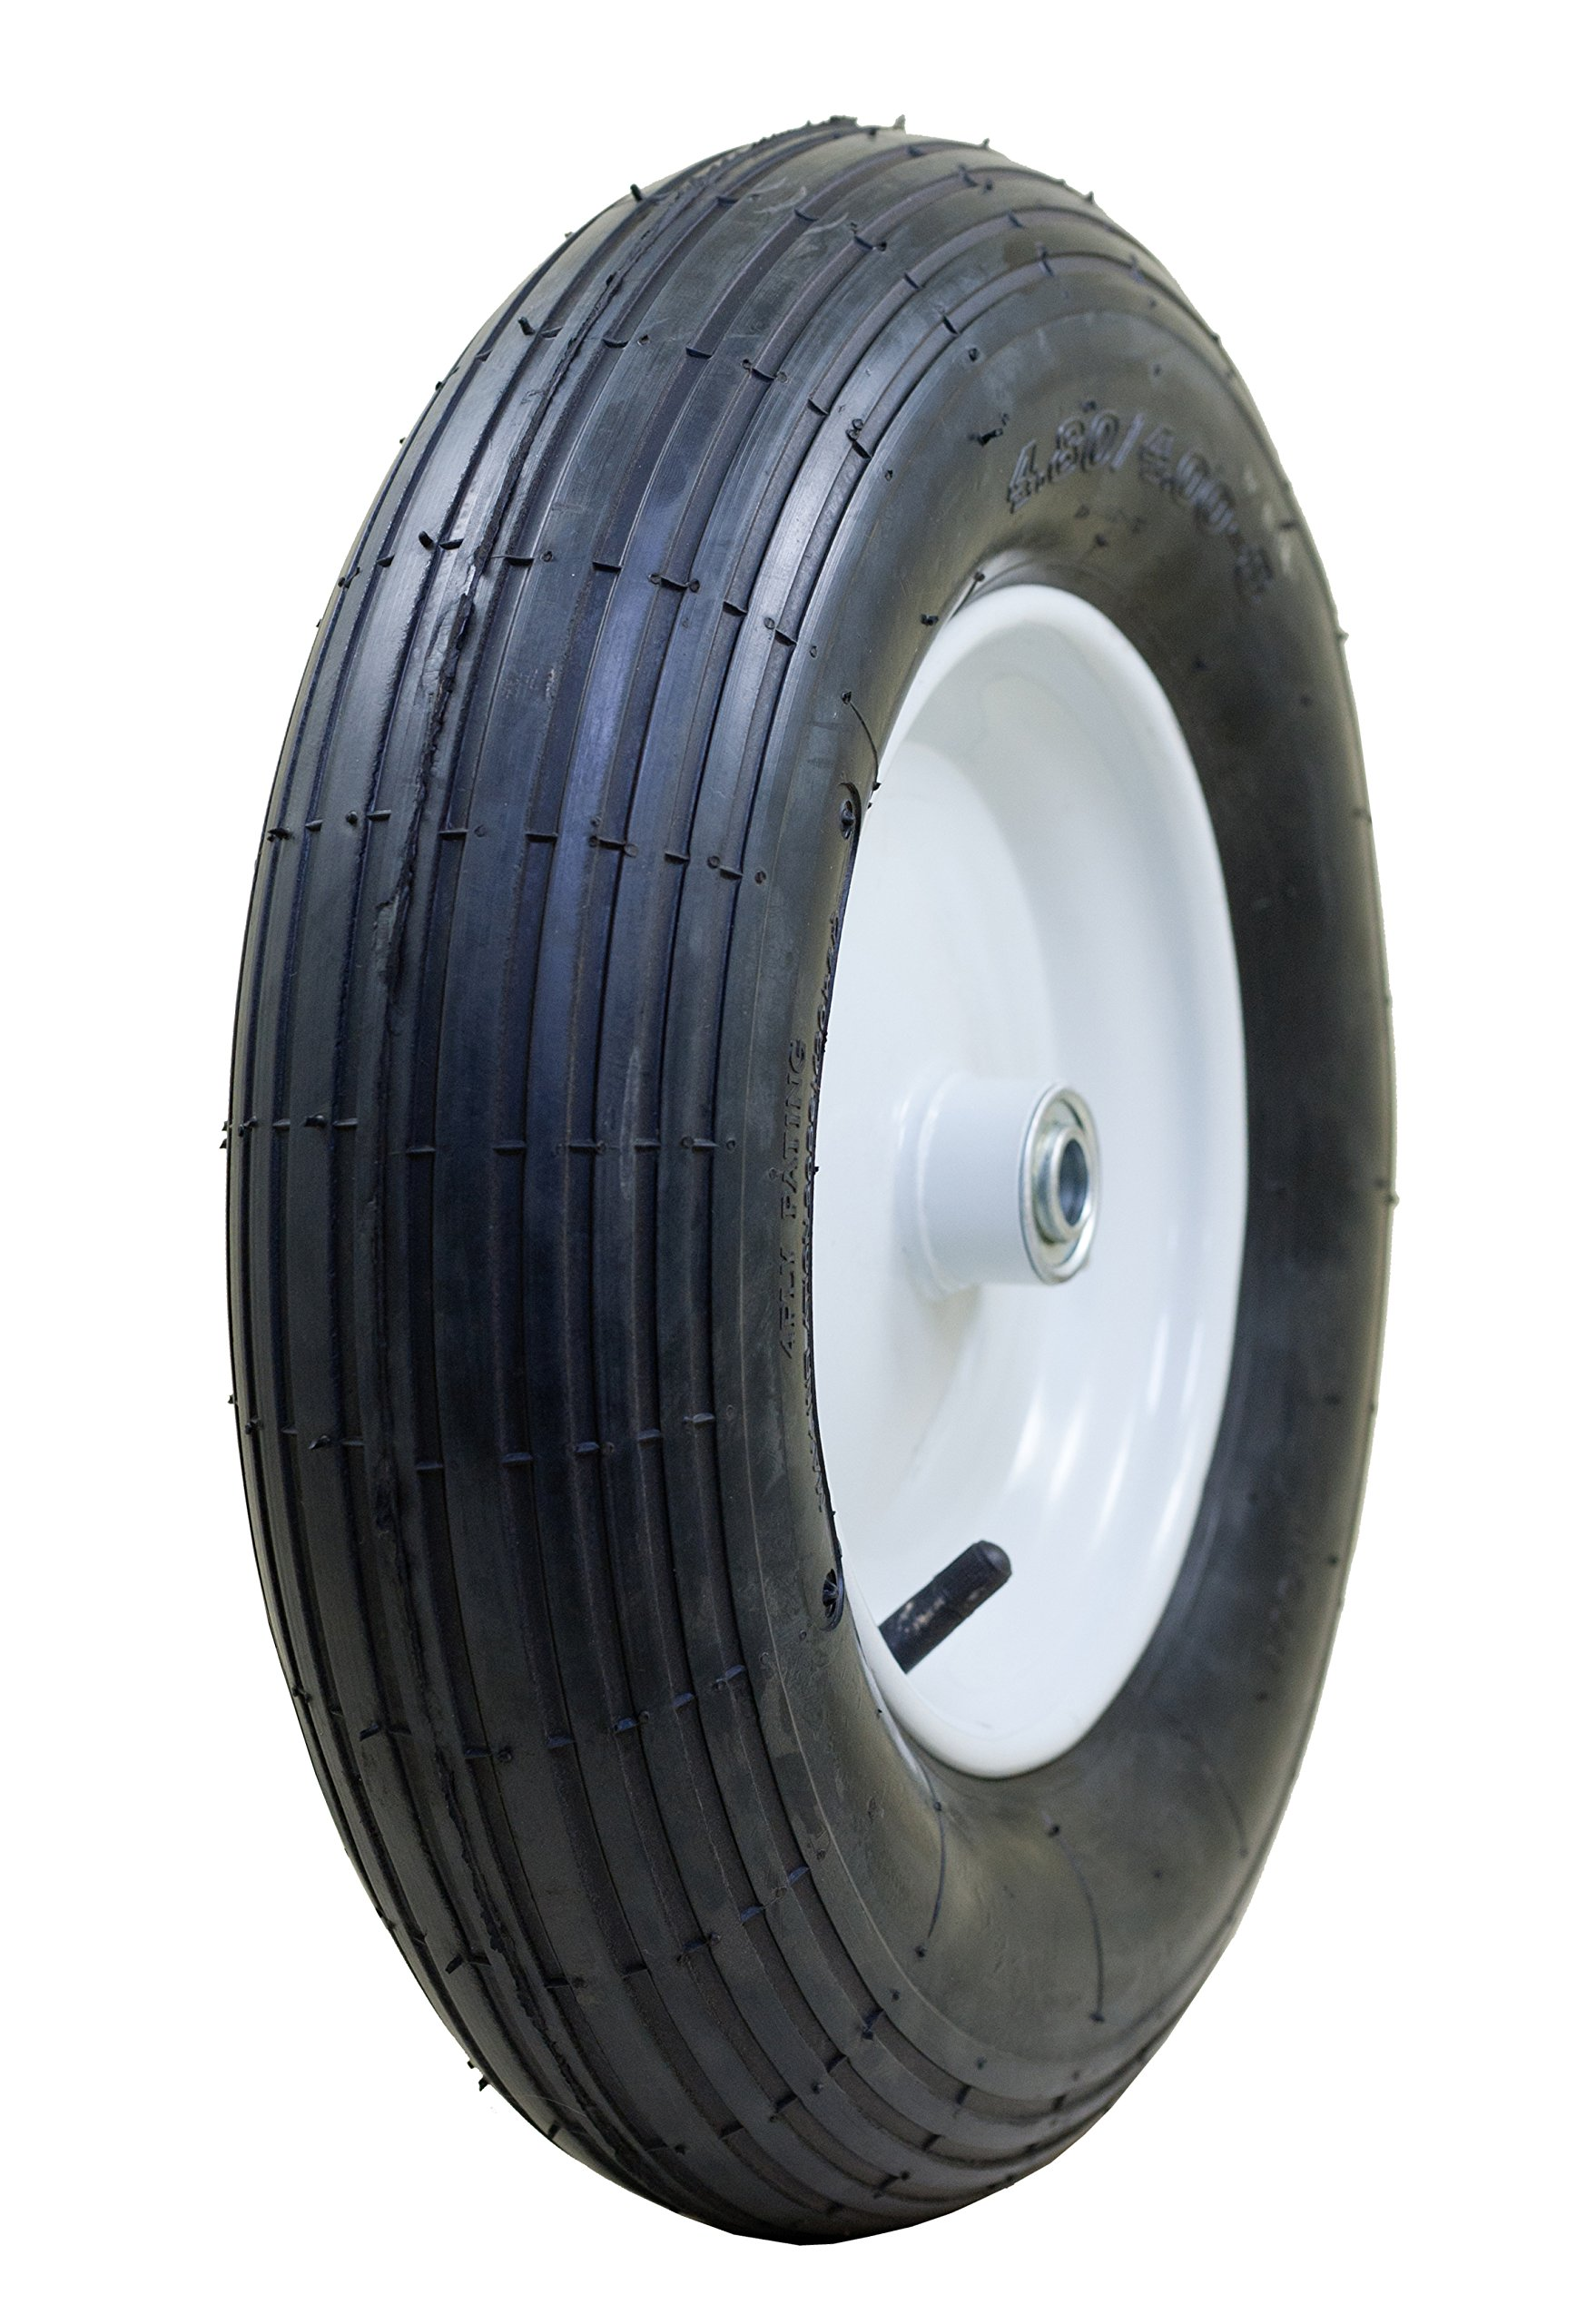 Marathon 4.80/4.00-8'' Pneumatic (Air Filled) Tire on Wheel, 3'' Hub, 3/4'' Bearings, Ribbed Tread by Marathon Industries (Image #1)